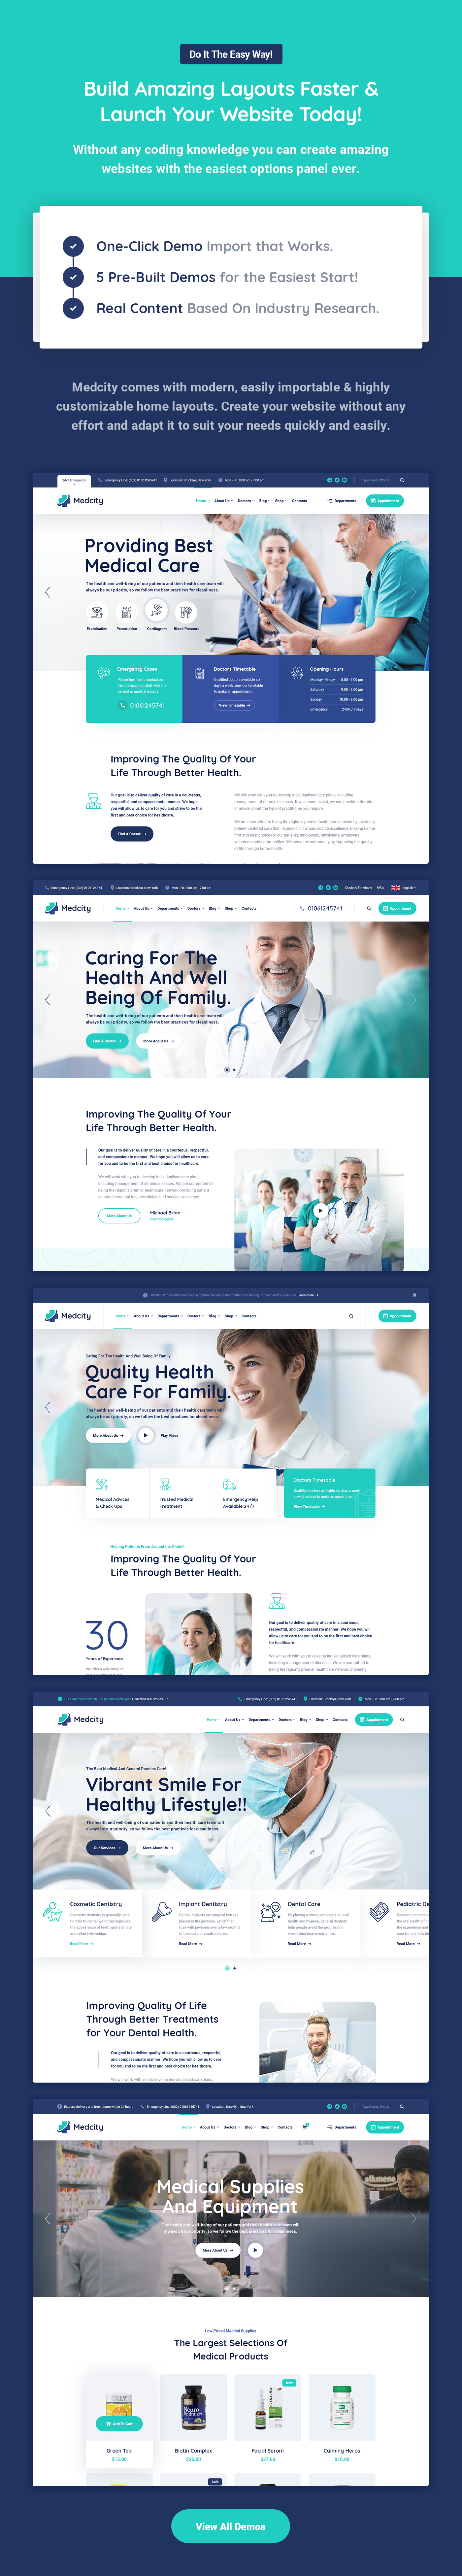 Medcity - Health & Medical WordPress Theme - 5